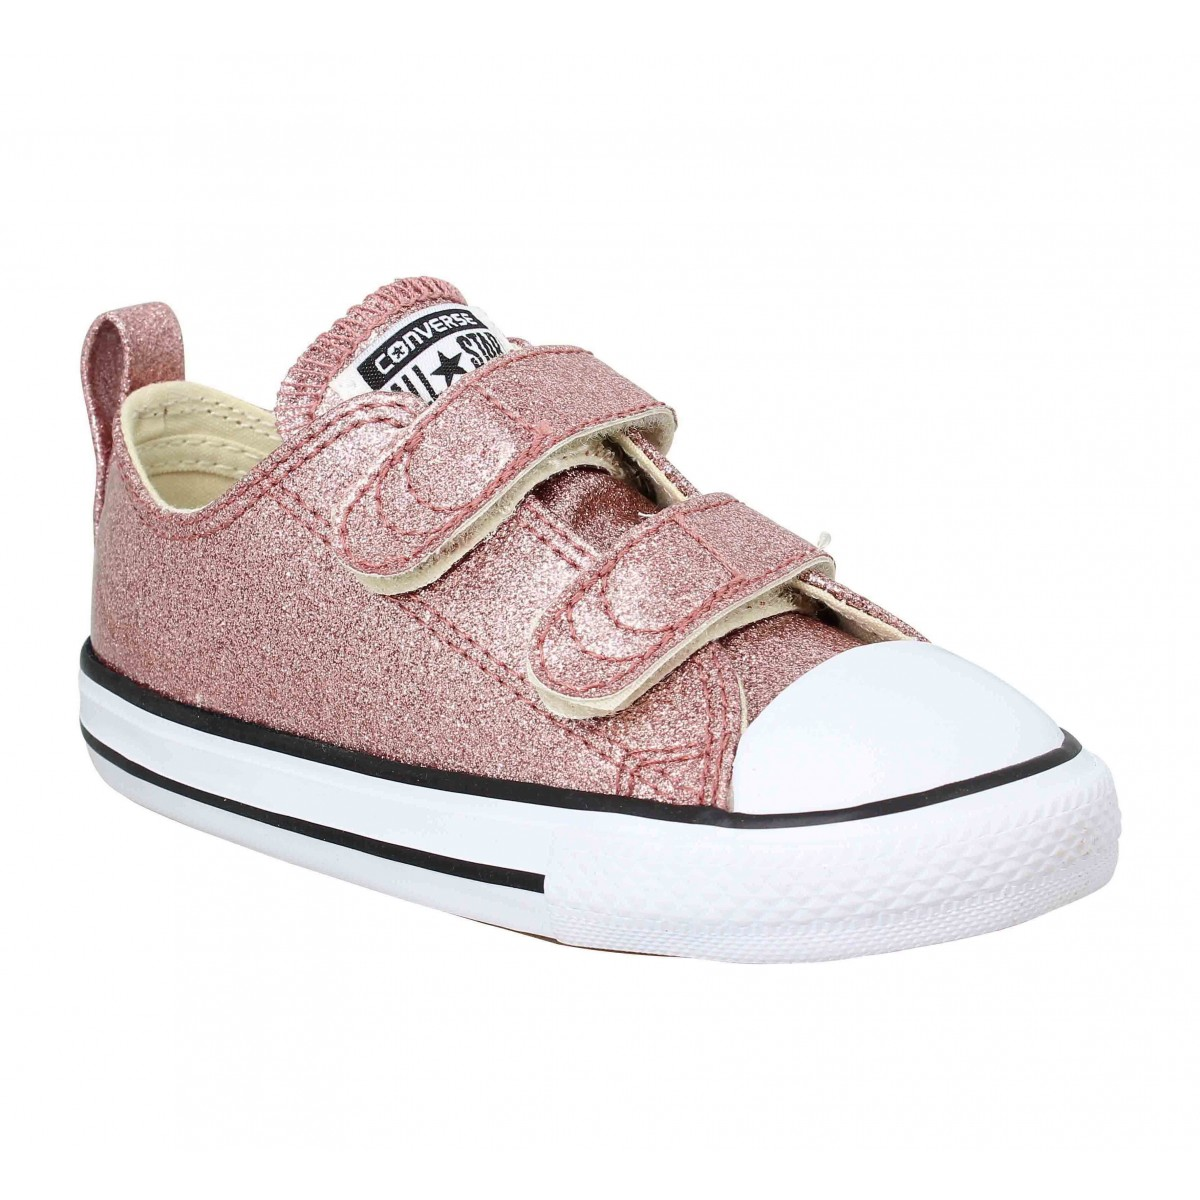 Baskets CONVERSE Chuck Taylor All Star 2V paillettes Enfant Rose